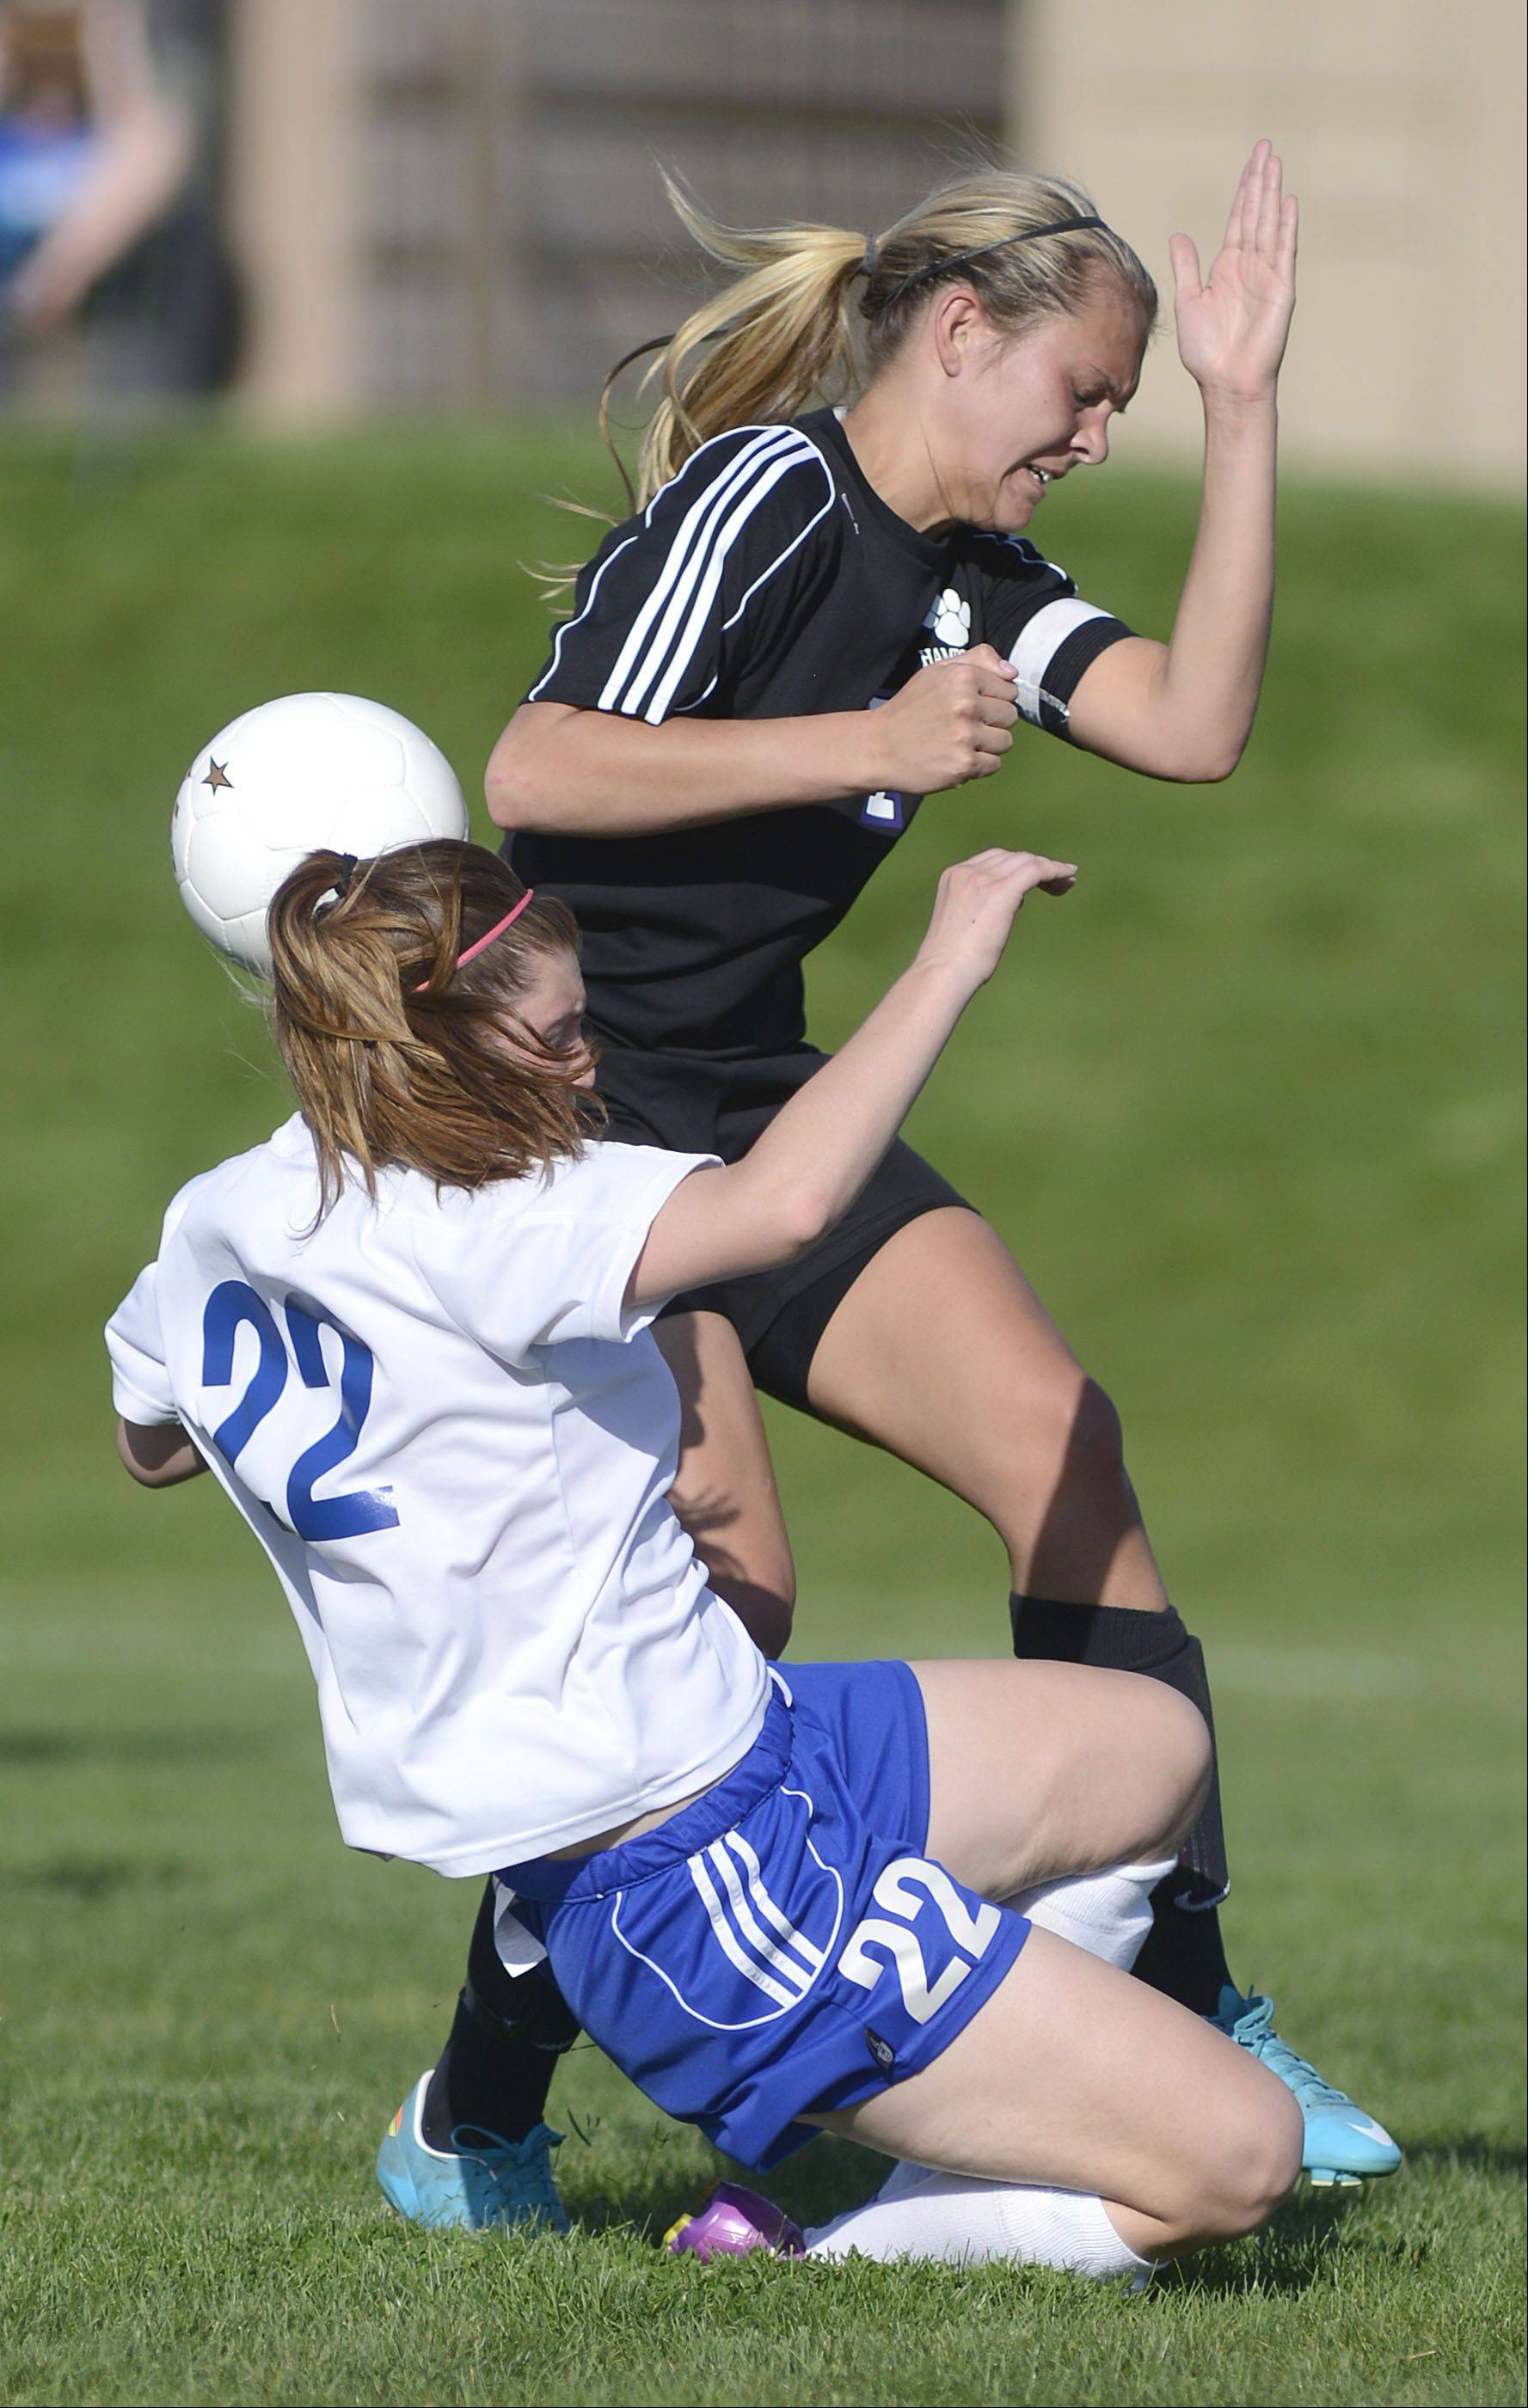 Burlington Central's Baily Panjkovich and Hampshire's Lizzie Panzica collide while battling for the ball in the second half of the Class 2A regional semifinal on Tuesday.